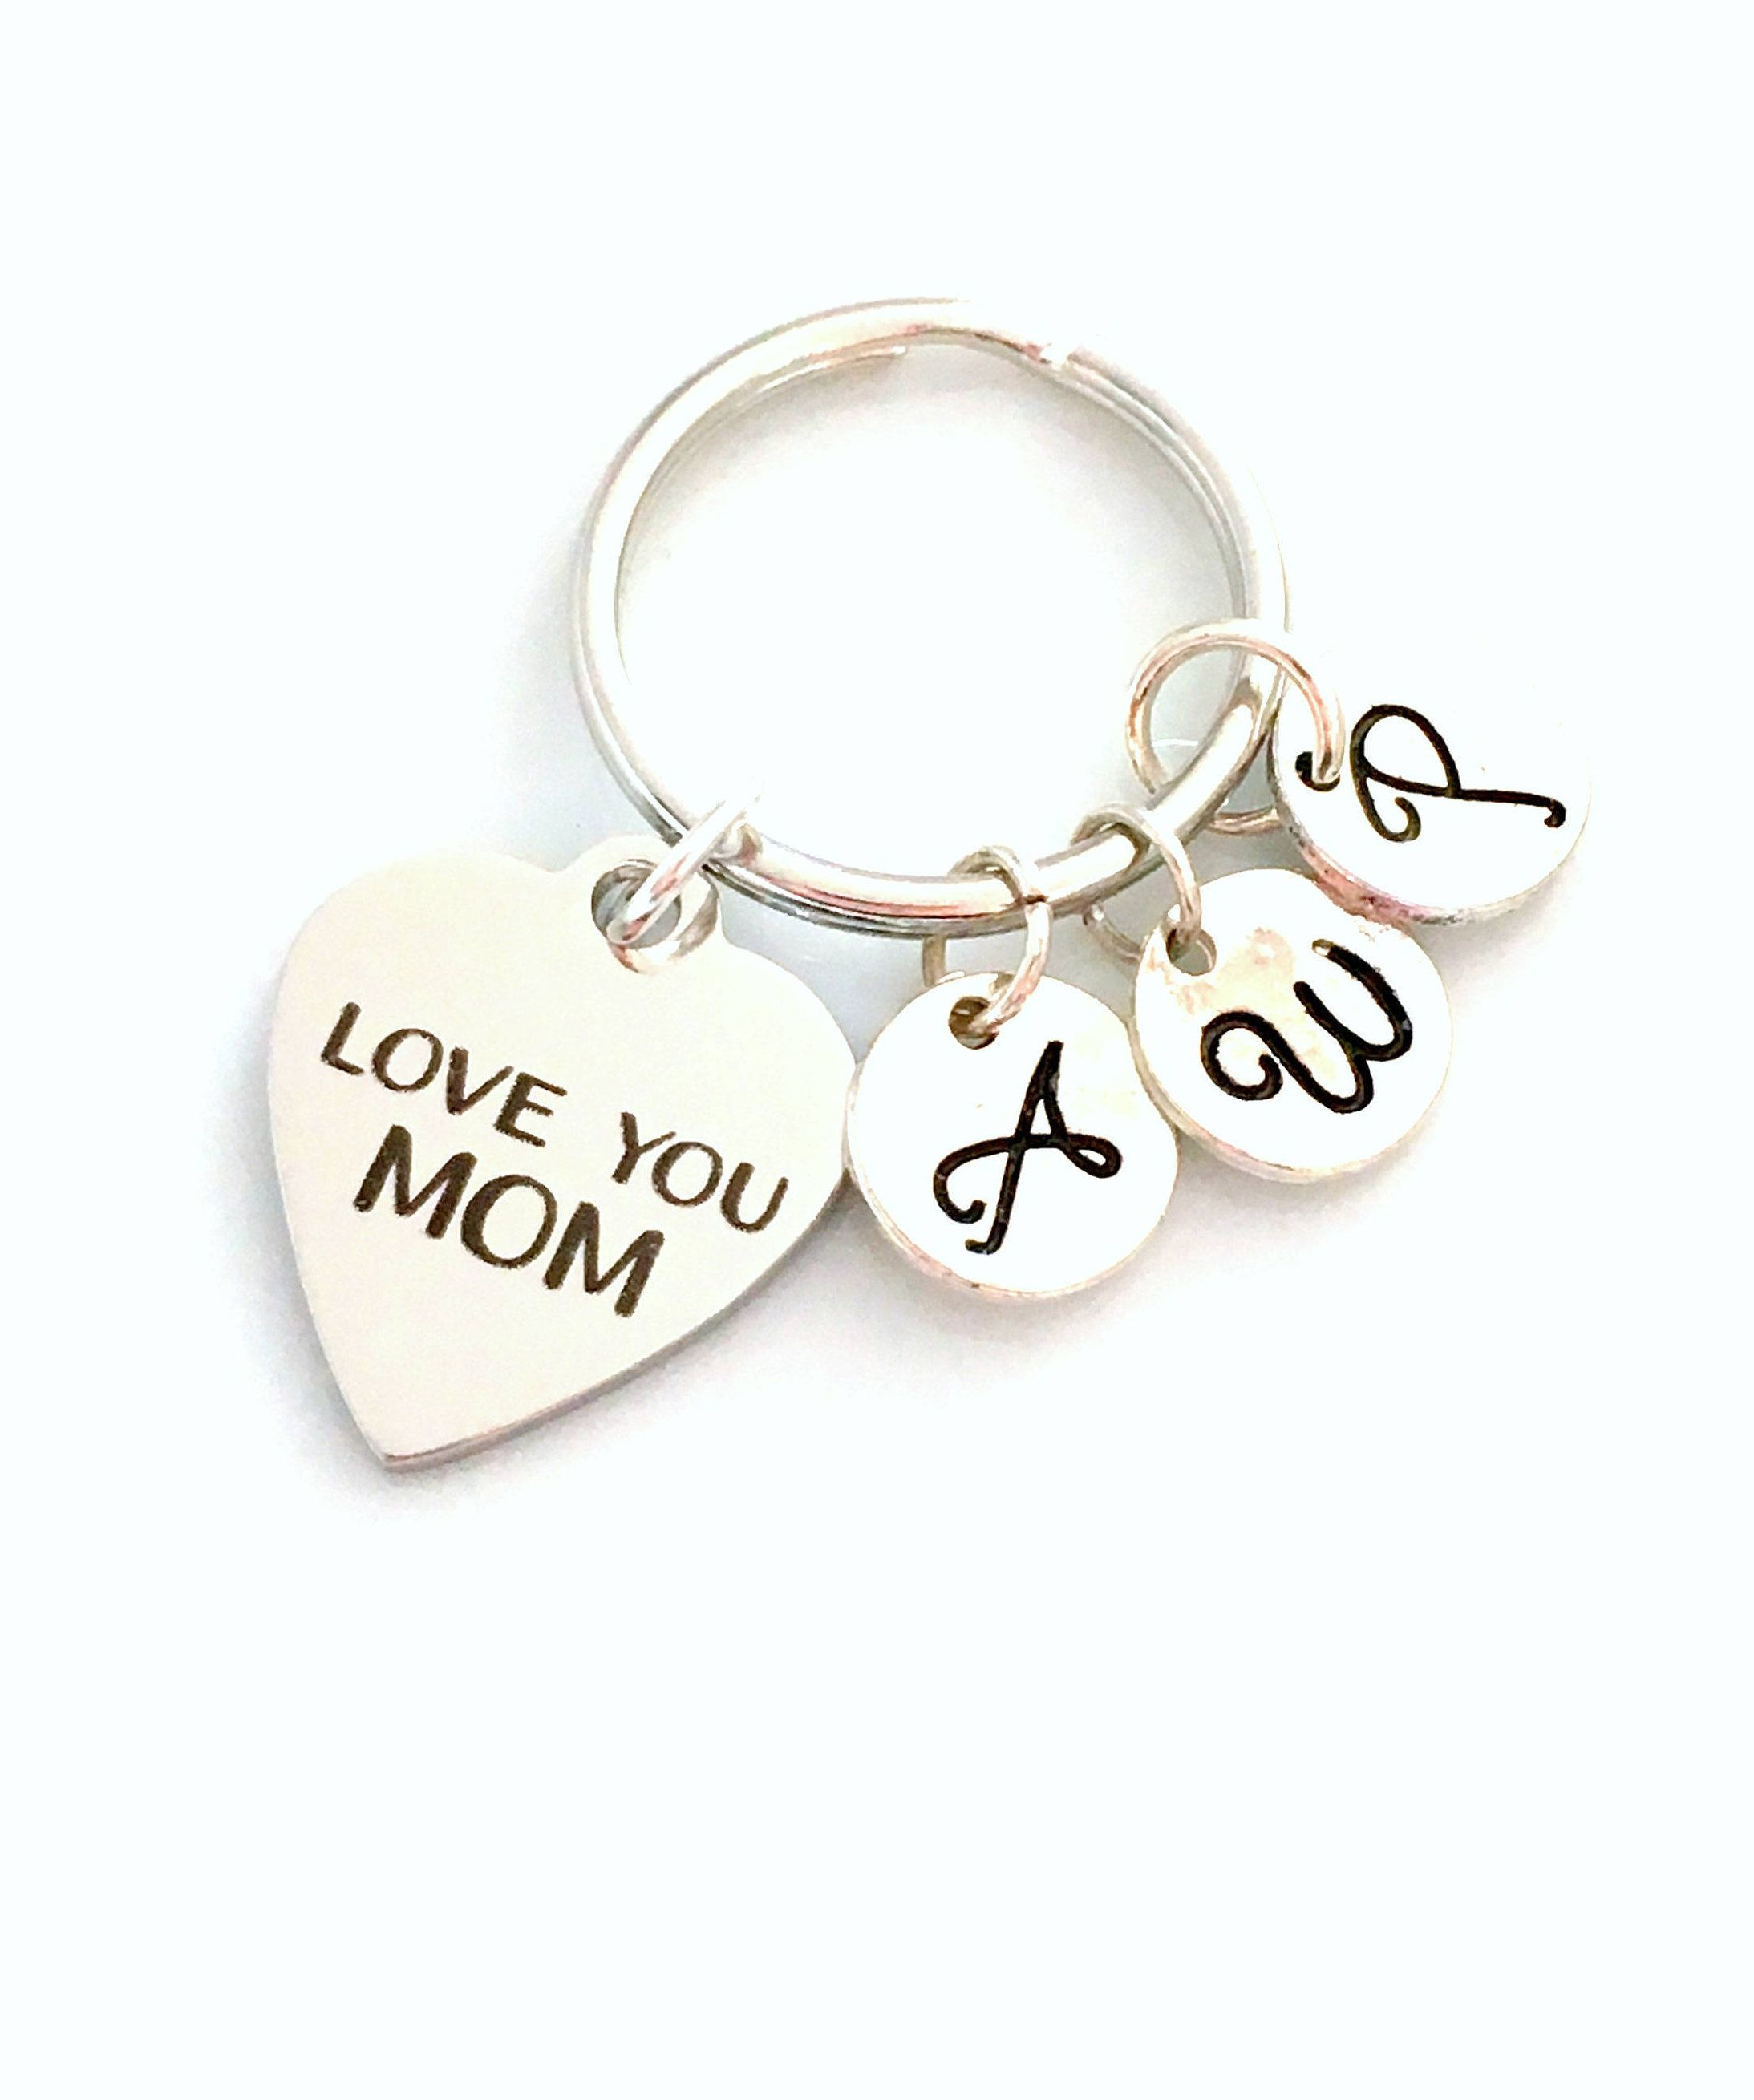 Love You Mom Gift Multiple Letters MotherS Keychain From